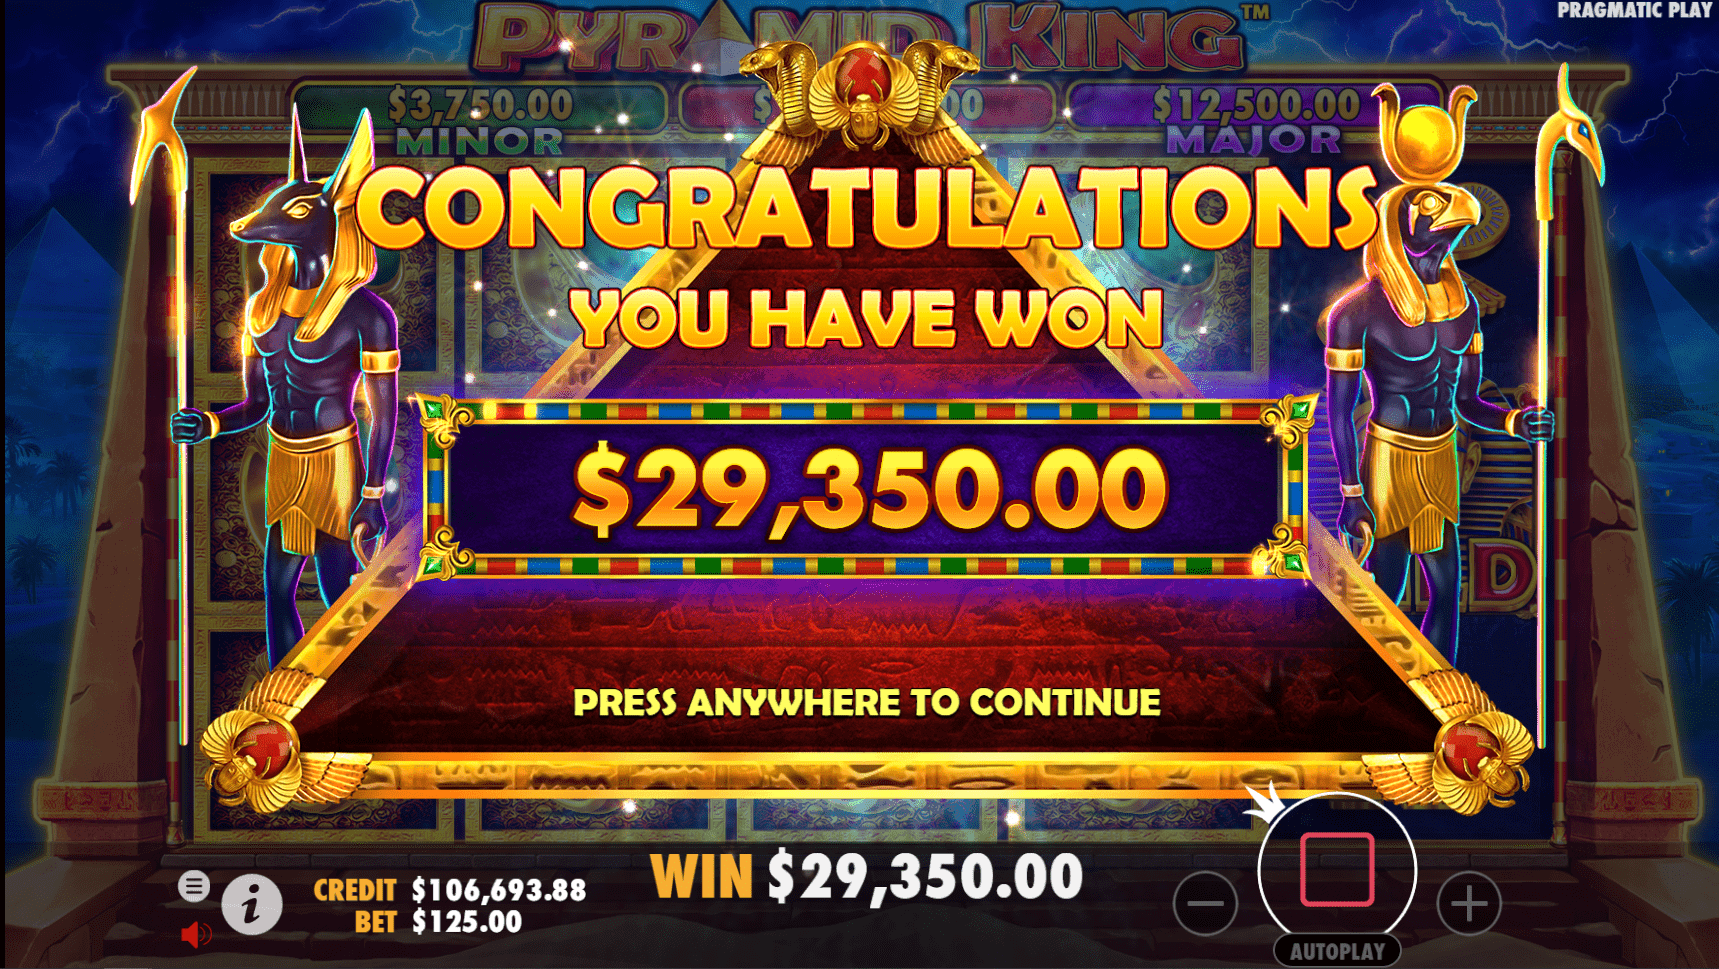 Pyramid King slot game big win